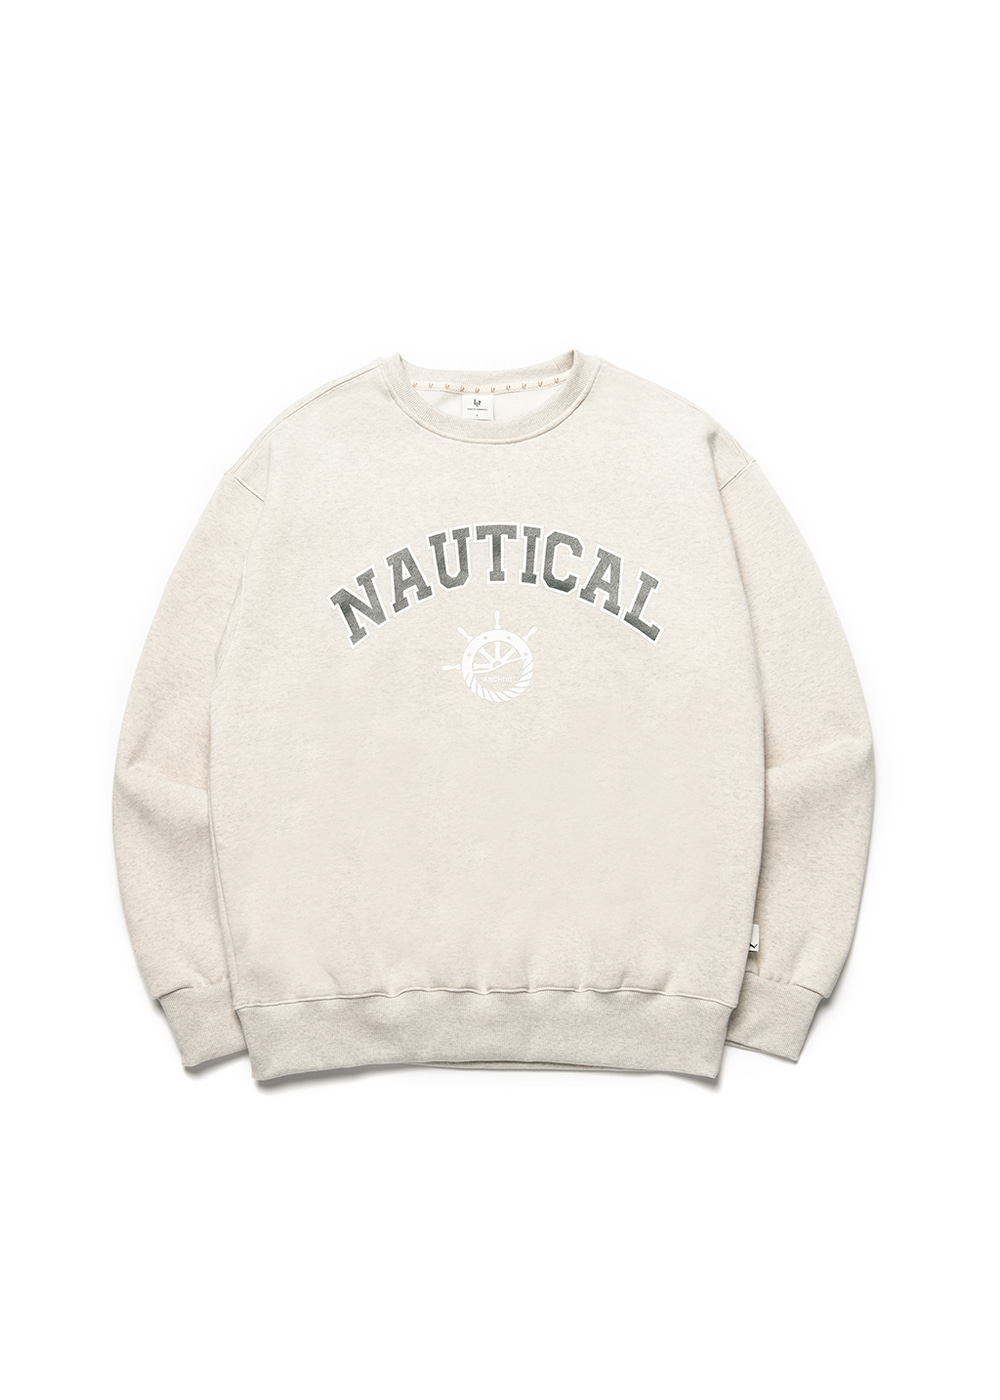 Nautical sweat shirt [oatmeal]